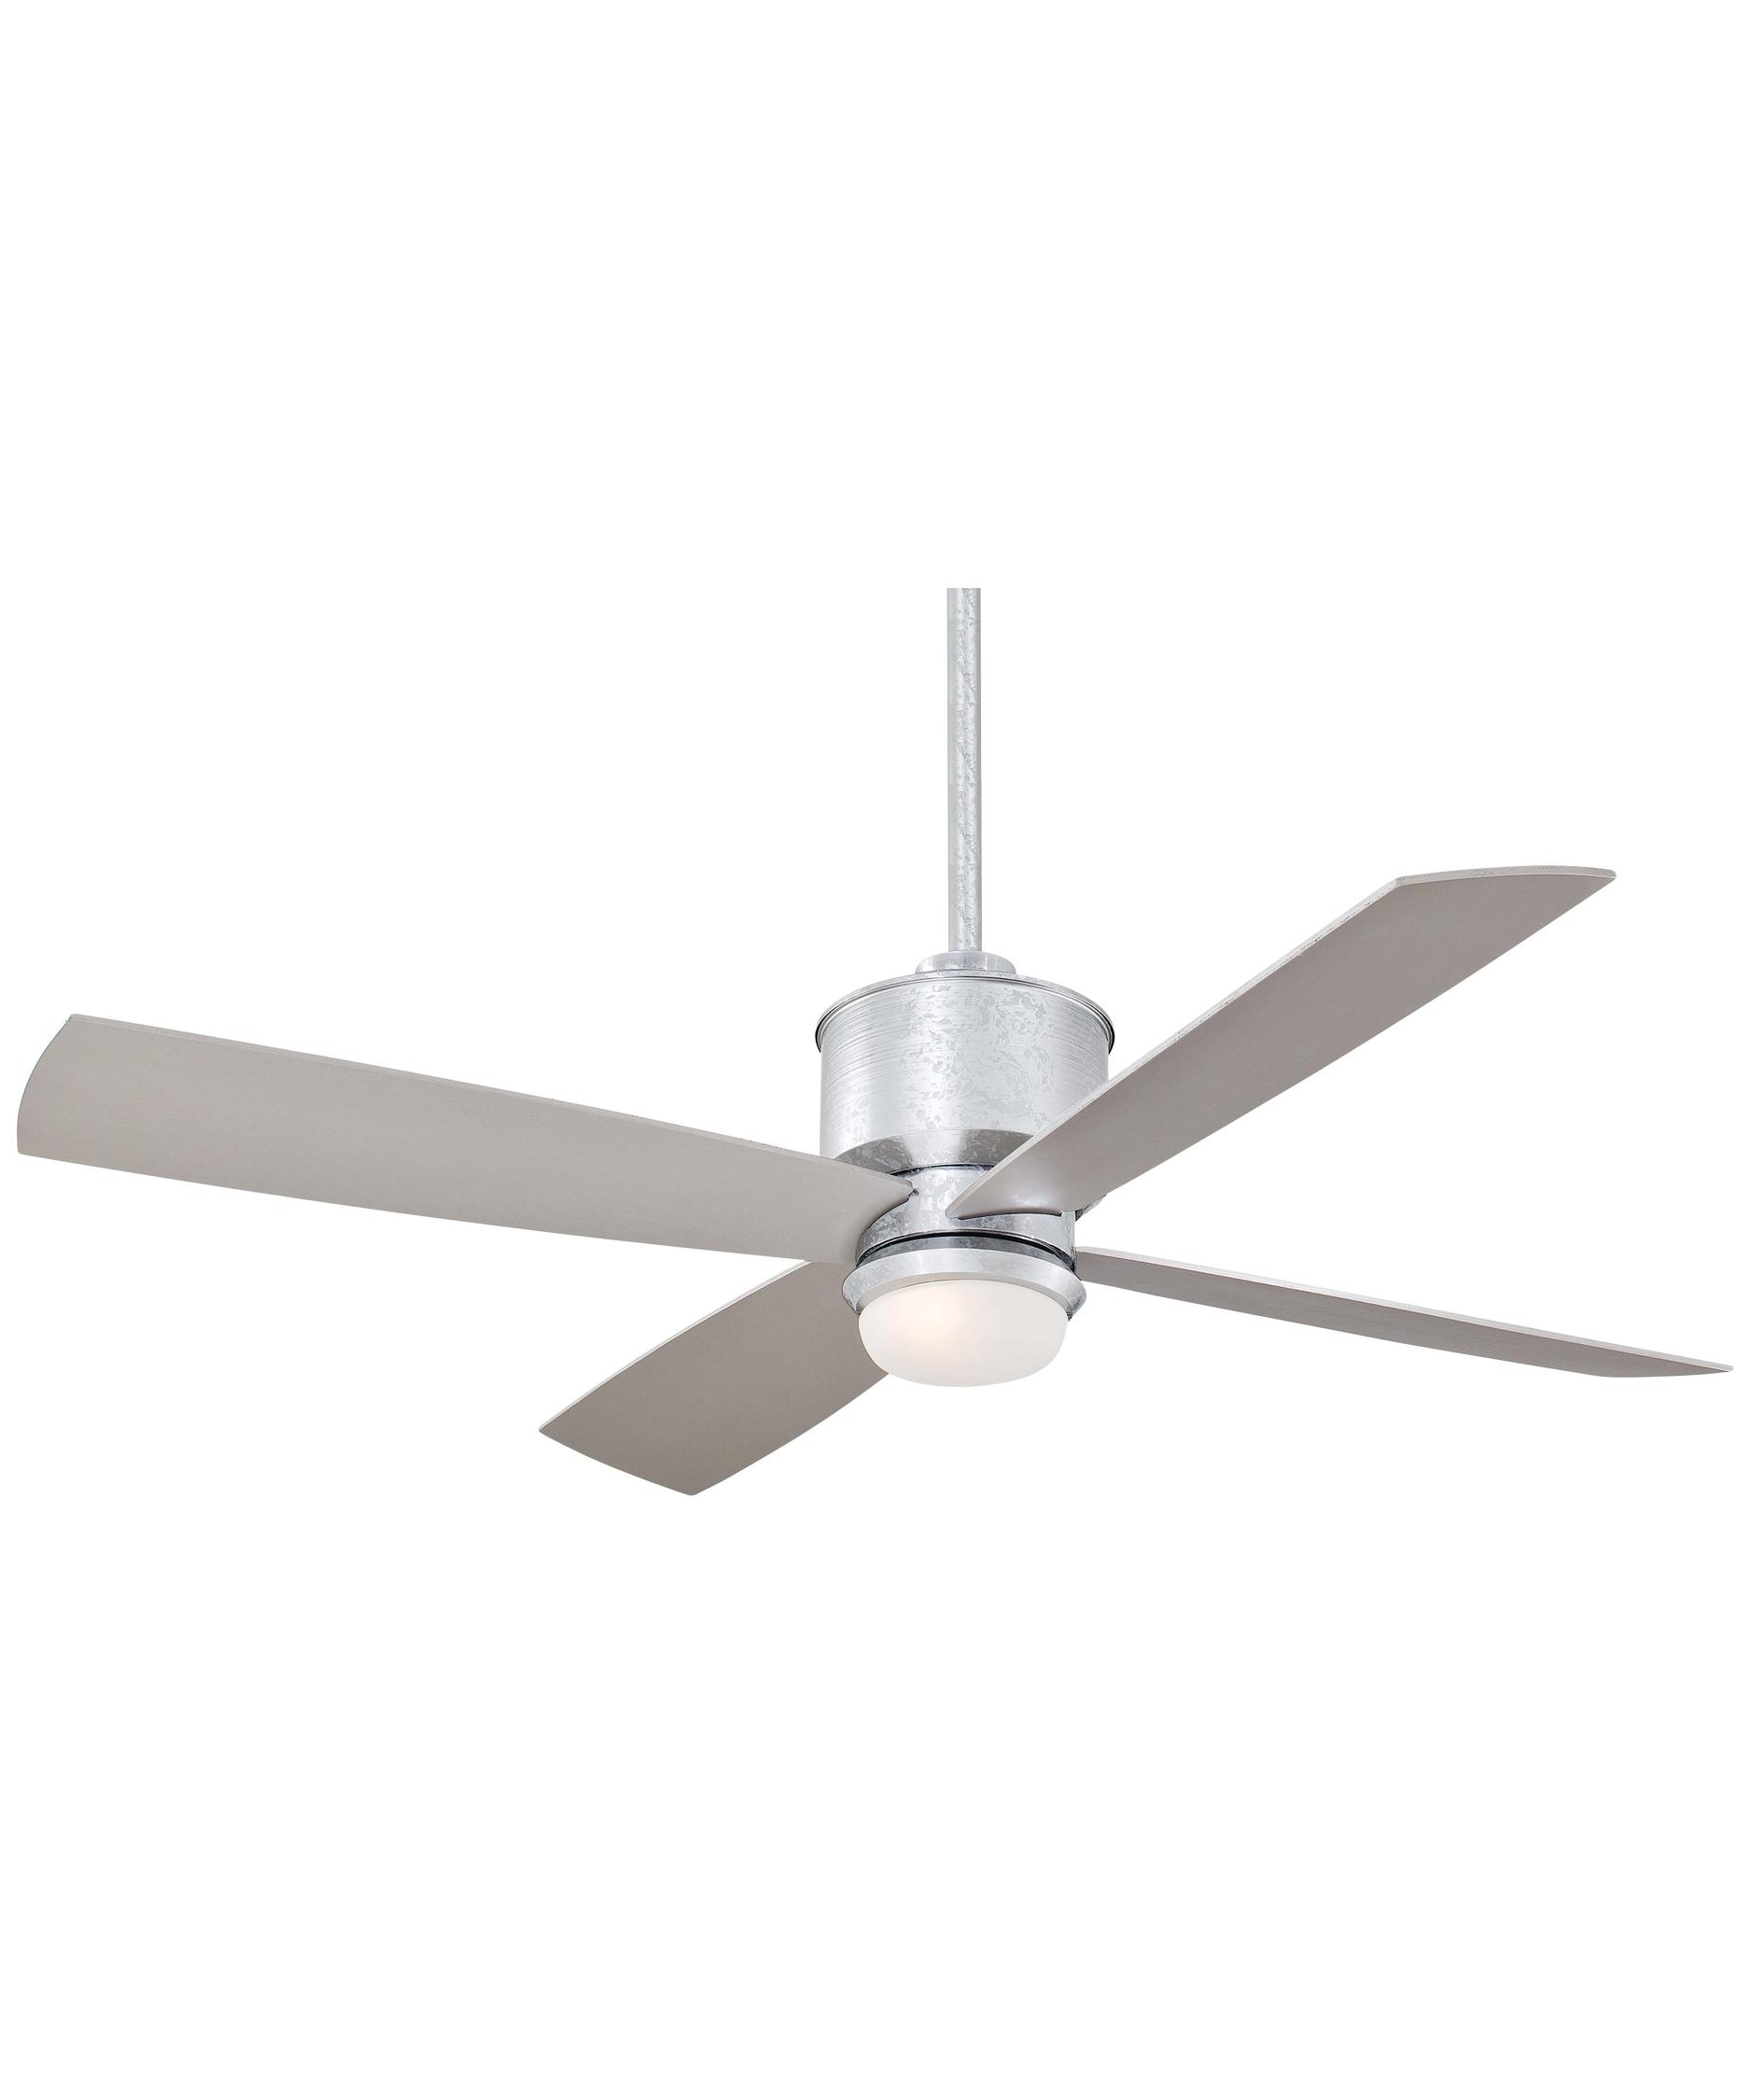 Popular Galvanized Outdoor Ceiling Fans With Light With Regard To Minka Aire F734 Strata 52 Inch 4 Blade Ceiling Fan (View 14 of 20)